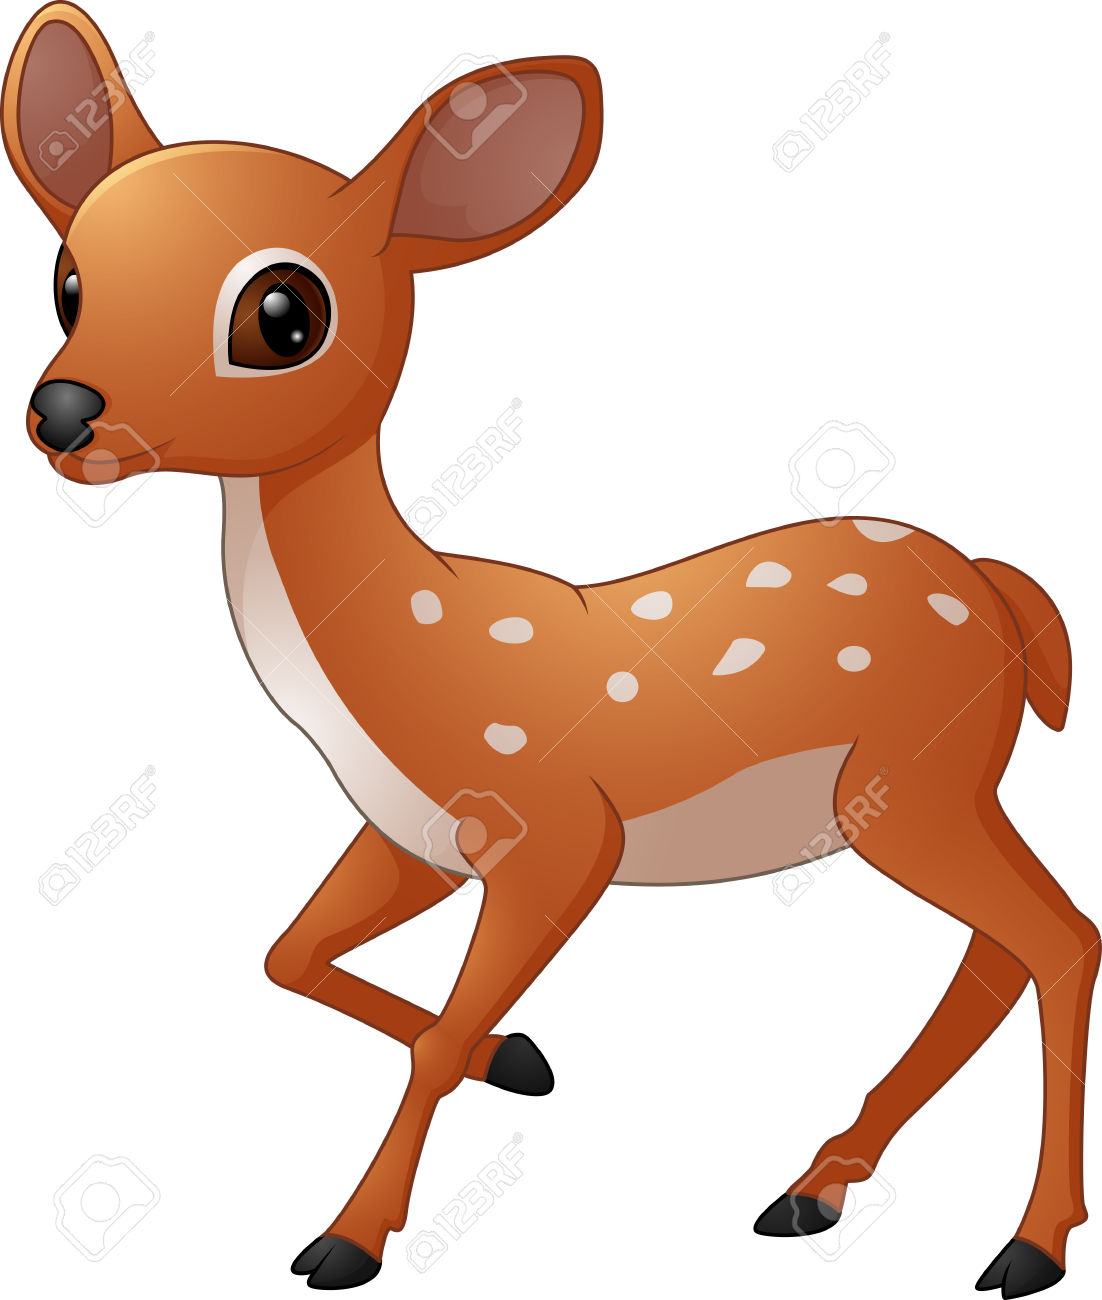 Deer clipart mouse deer #12